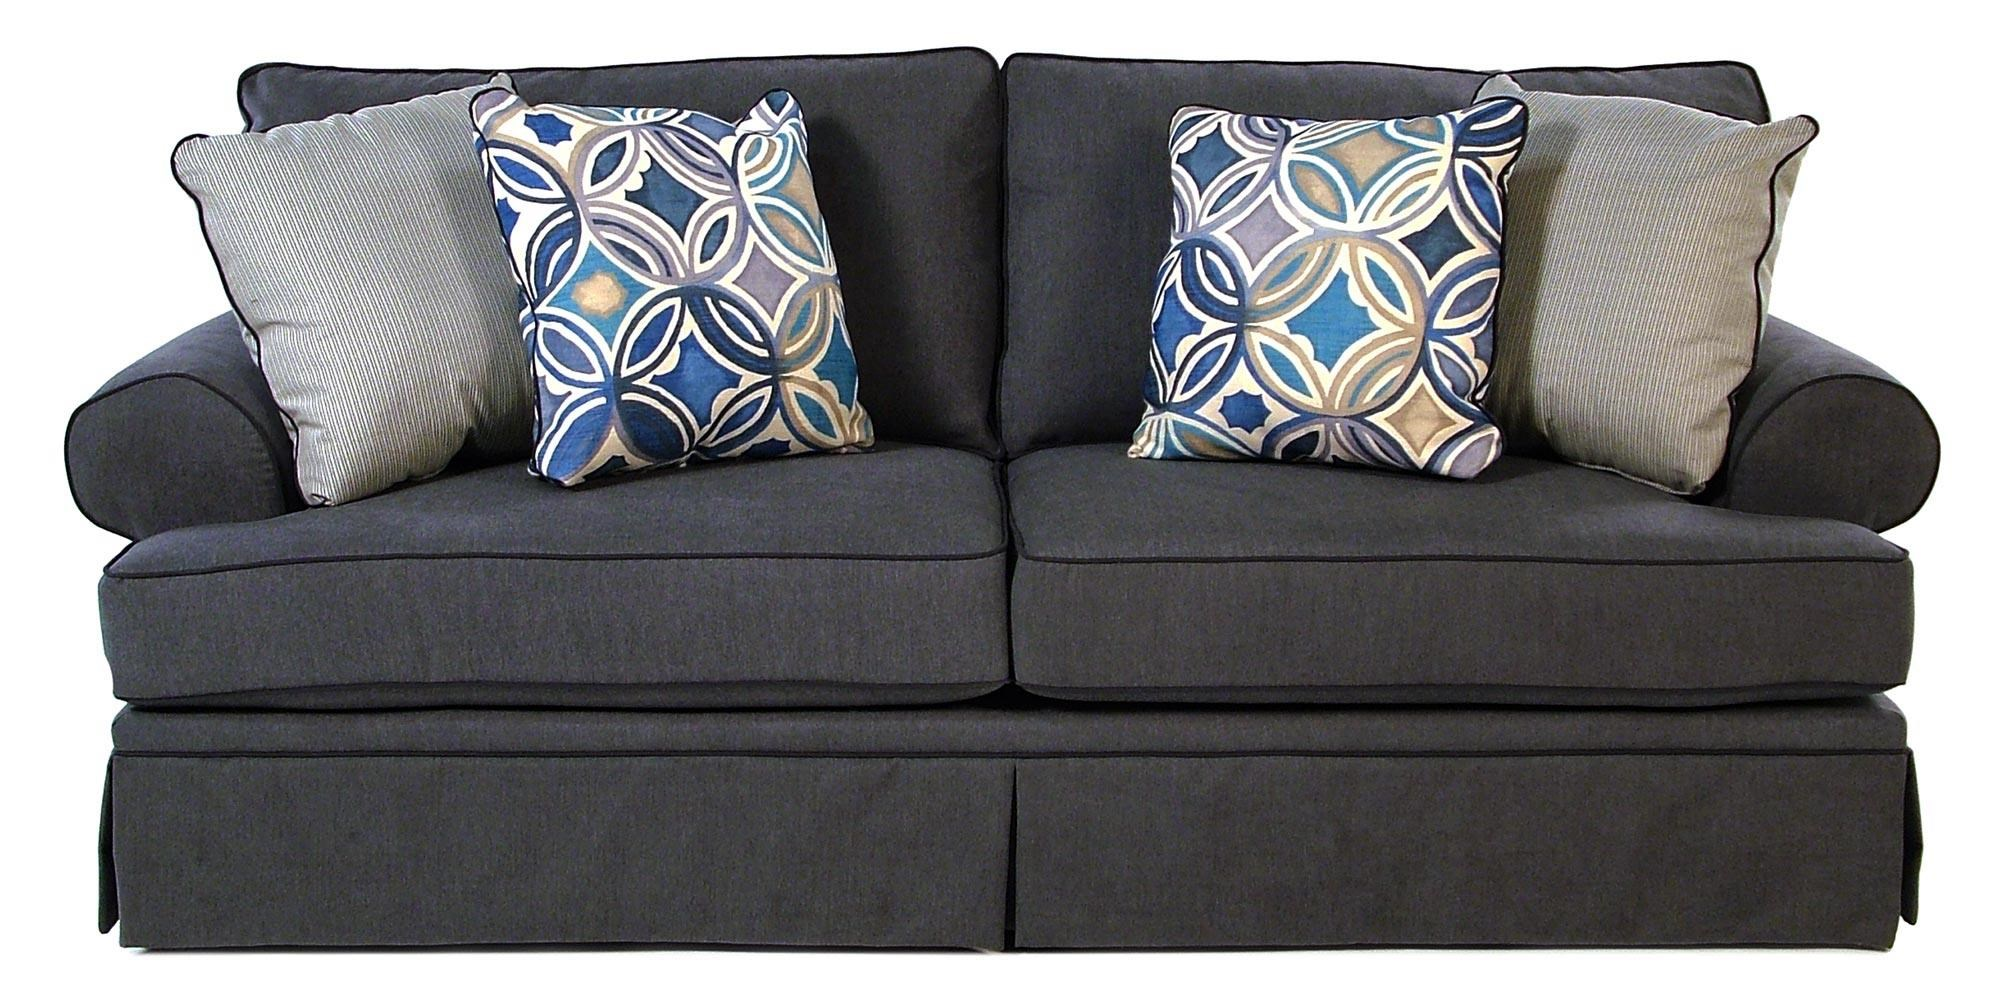 Broyhill Furniture EmilyCasual Style Sofa ...